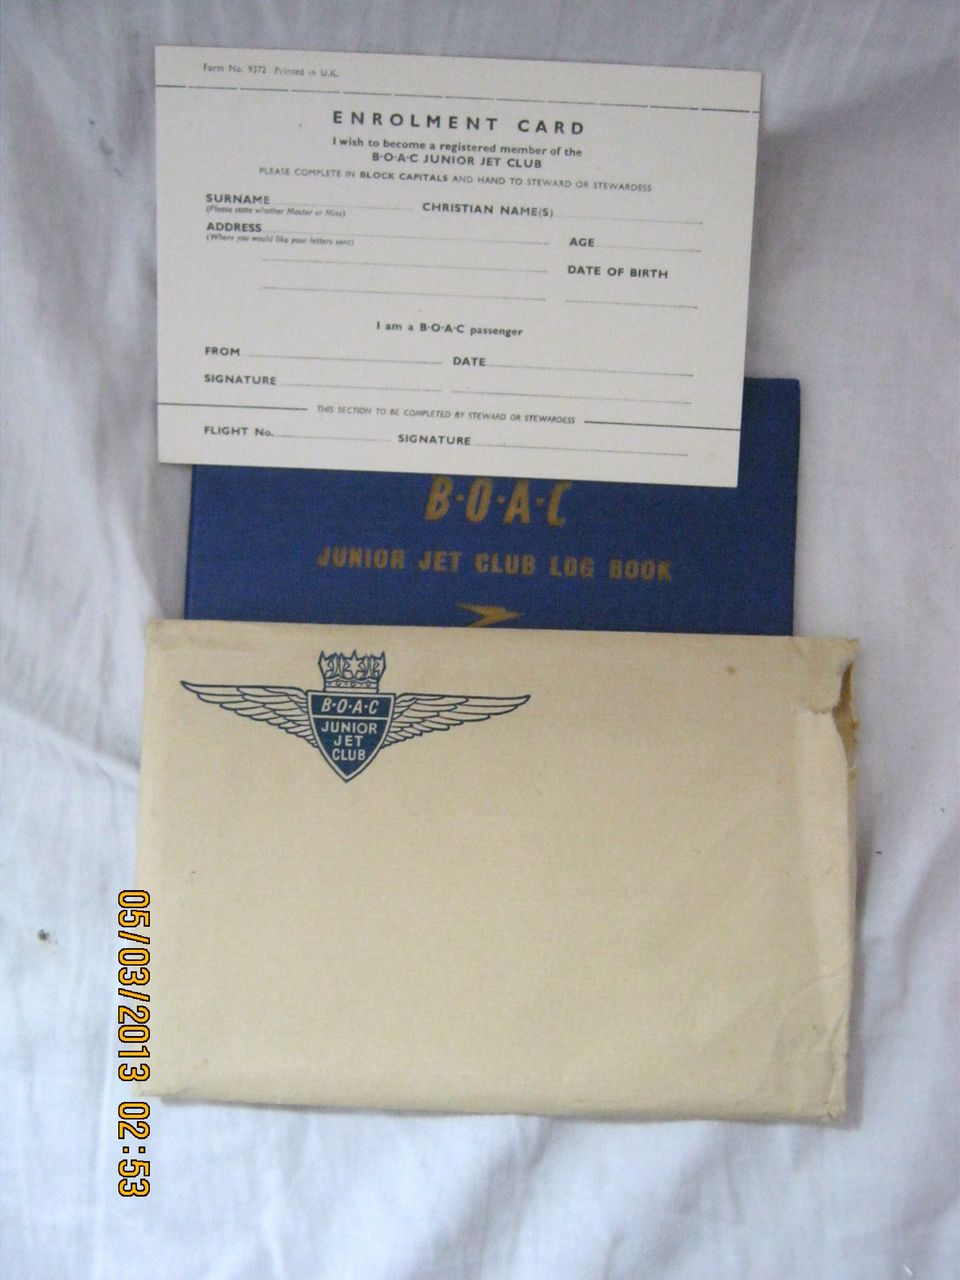 BOAC Junior Jet Club Membership Book